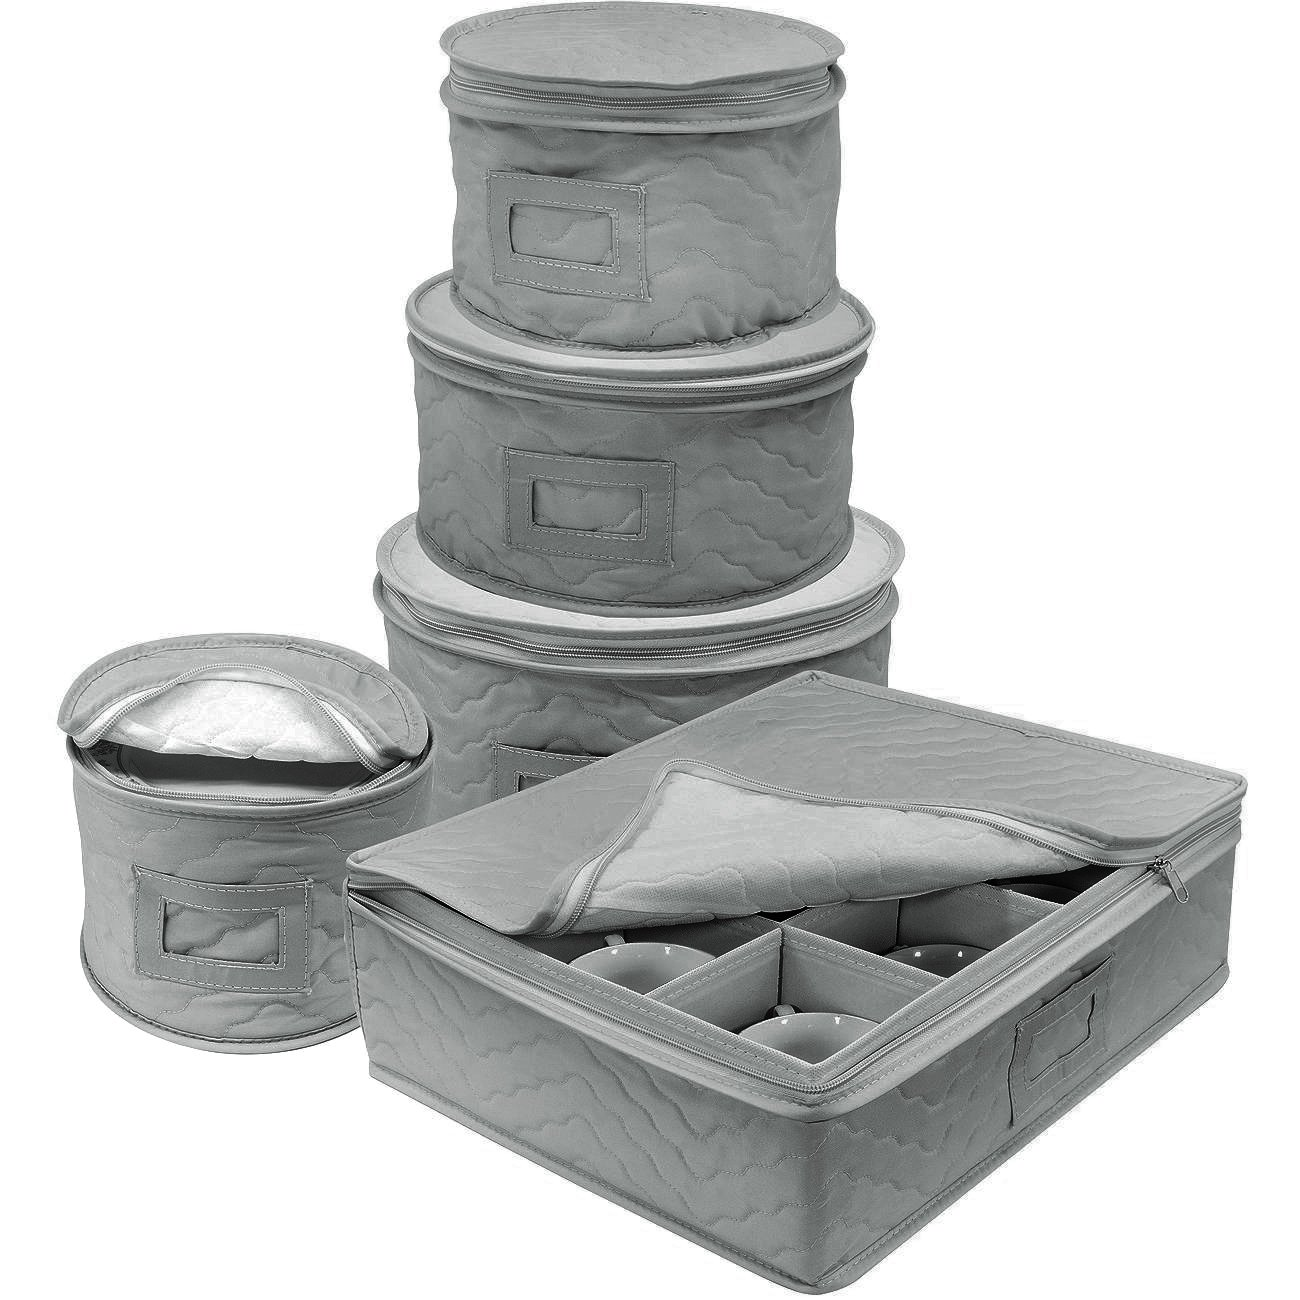 Sorbus Dinnerware Storage 5-Piece Set for Protecting or Transporting Dinnerware - Service for 12 - Round Plate and Cup Quilted Protection, Felt Protectors for Plates, Fine China Case (Gray) by Sorbus